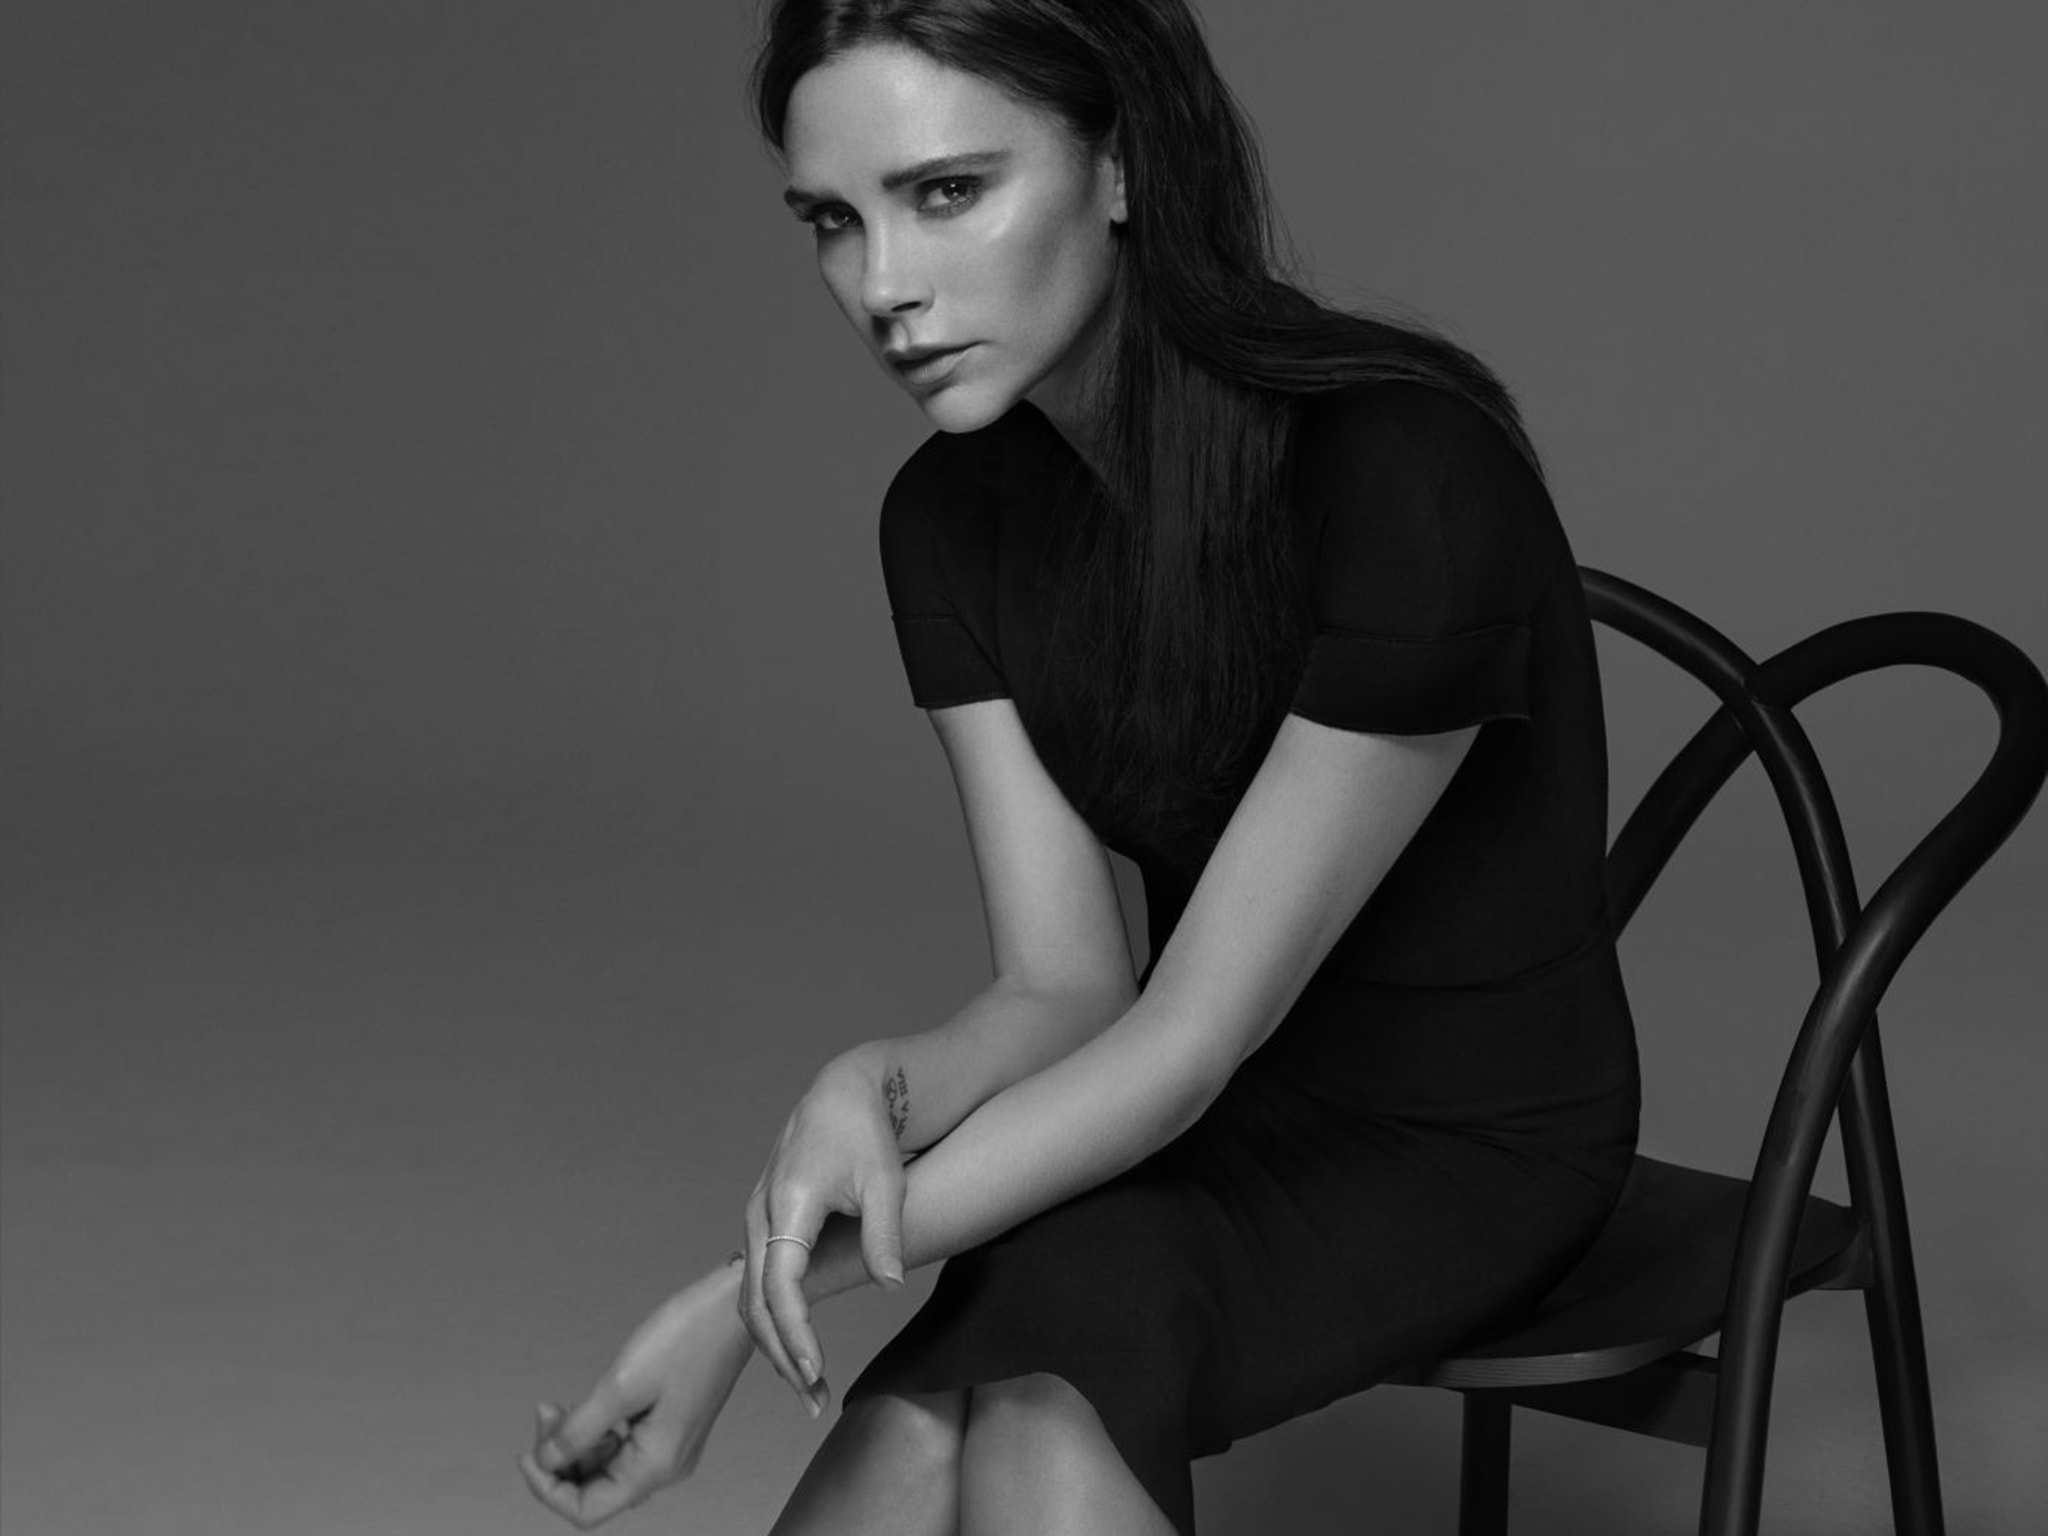 Victoria Beckham Background